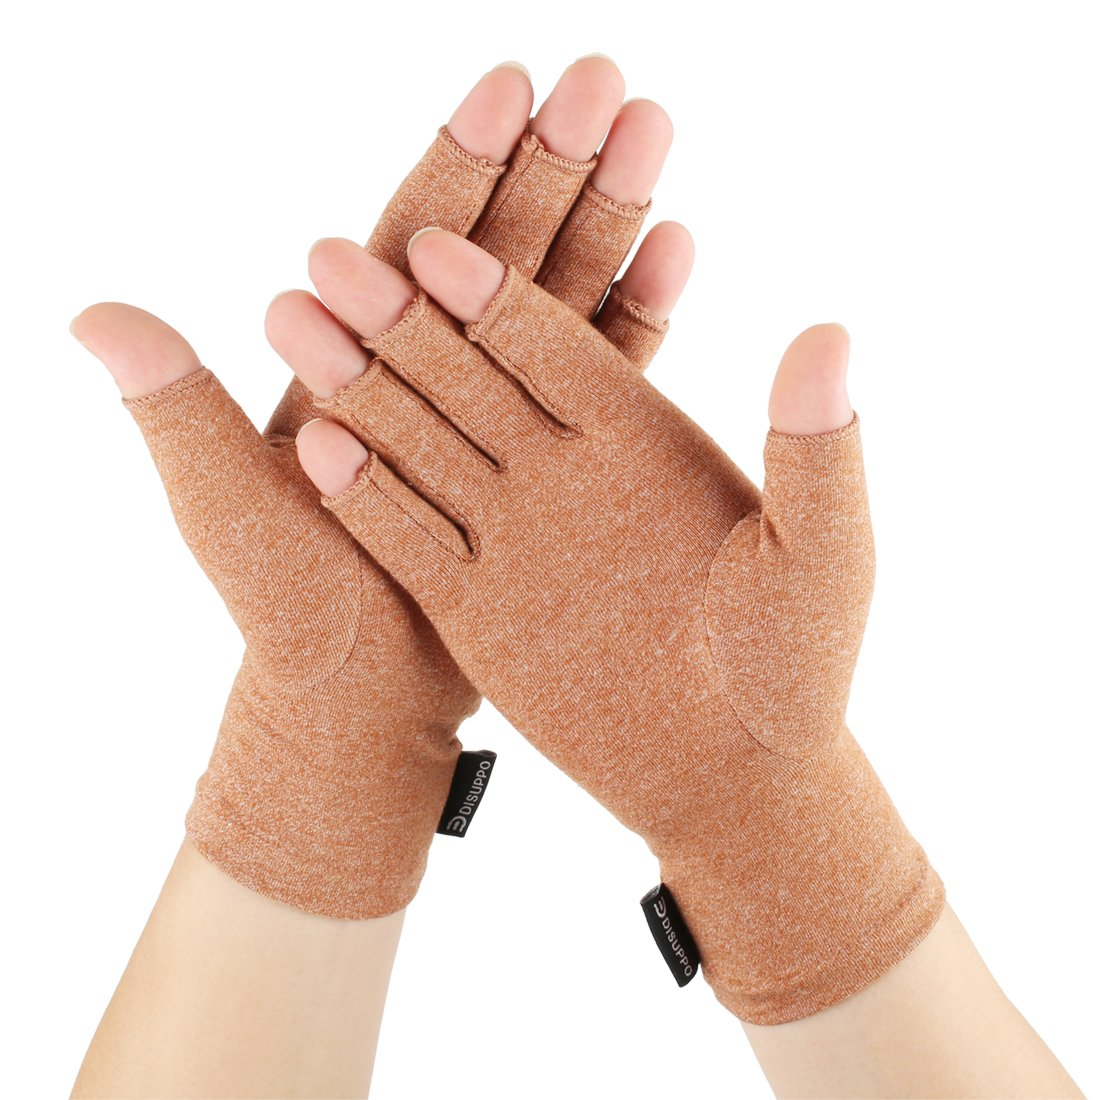 Arthritis gloves Large XL relieve pain from Rheumatoid, RSI,Carpal Tunnel, Compression Gloves Fingerless for Computer Typing and Dailywork, Support for Hands And Joints by DISUPPO (Brown, X-Large)